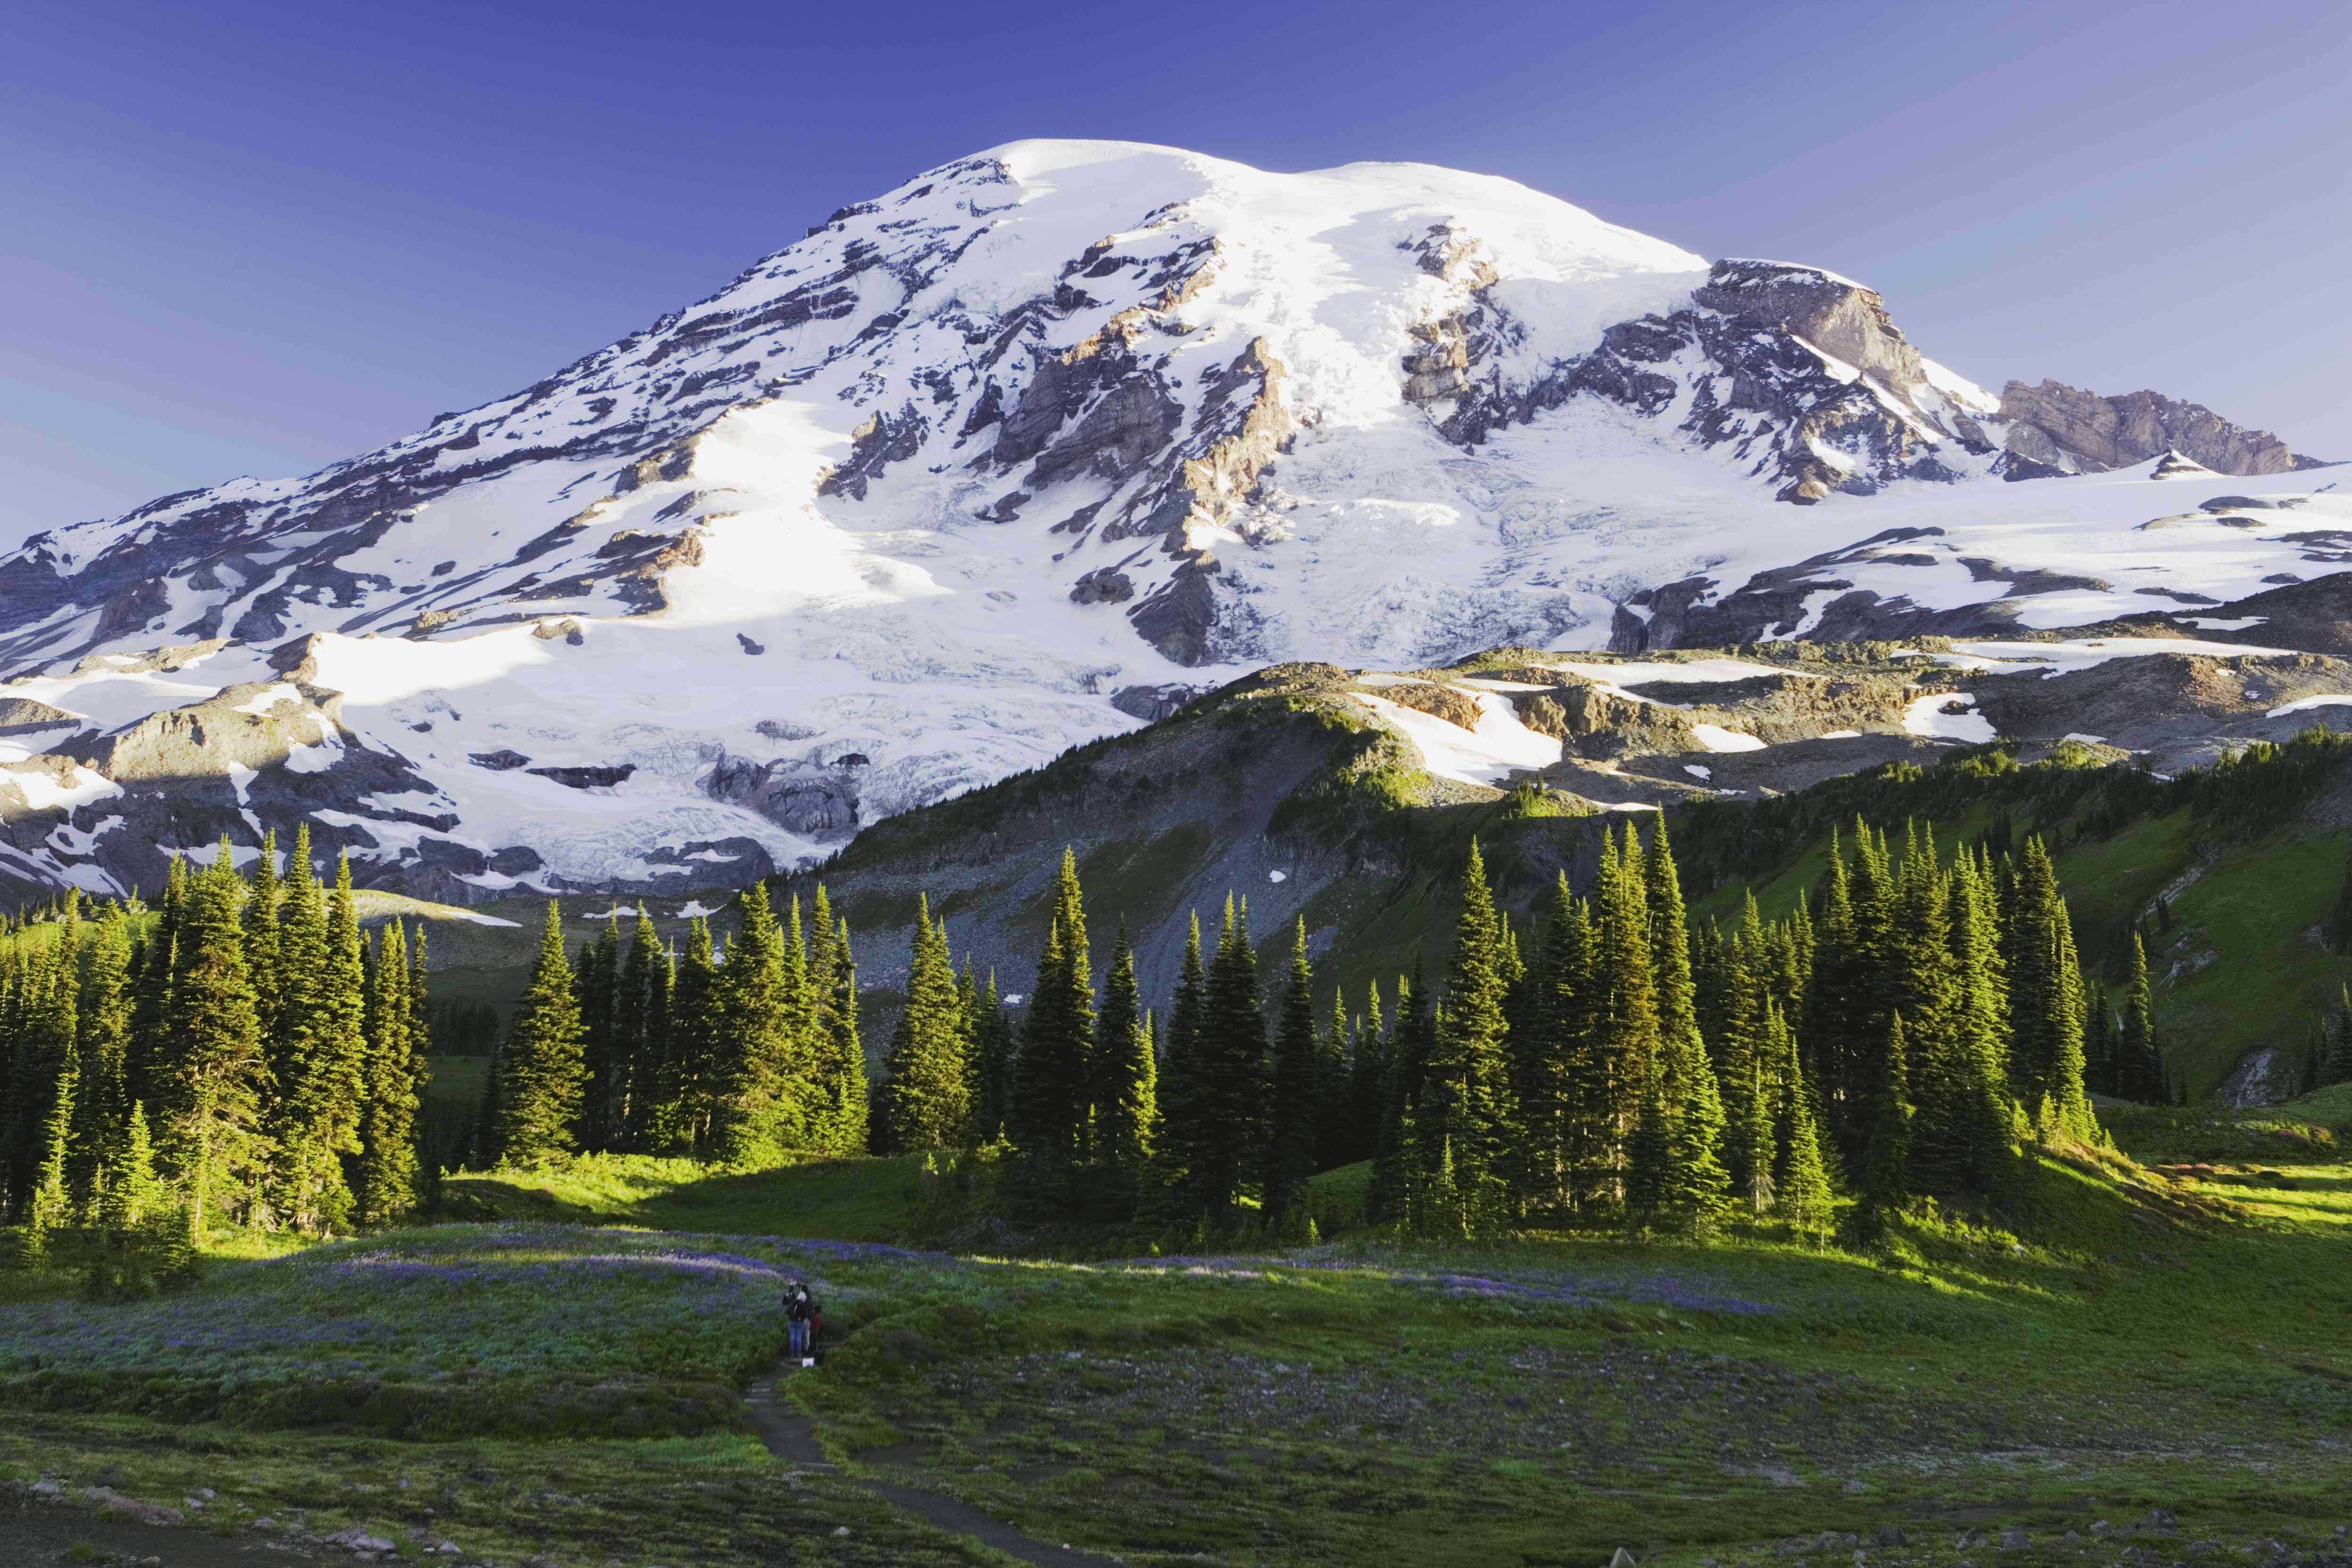 People hiking through forest in the shadow of Mount Rainier